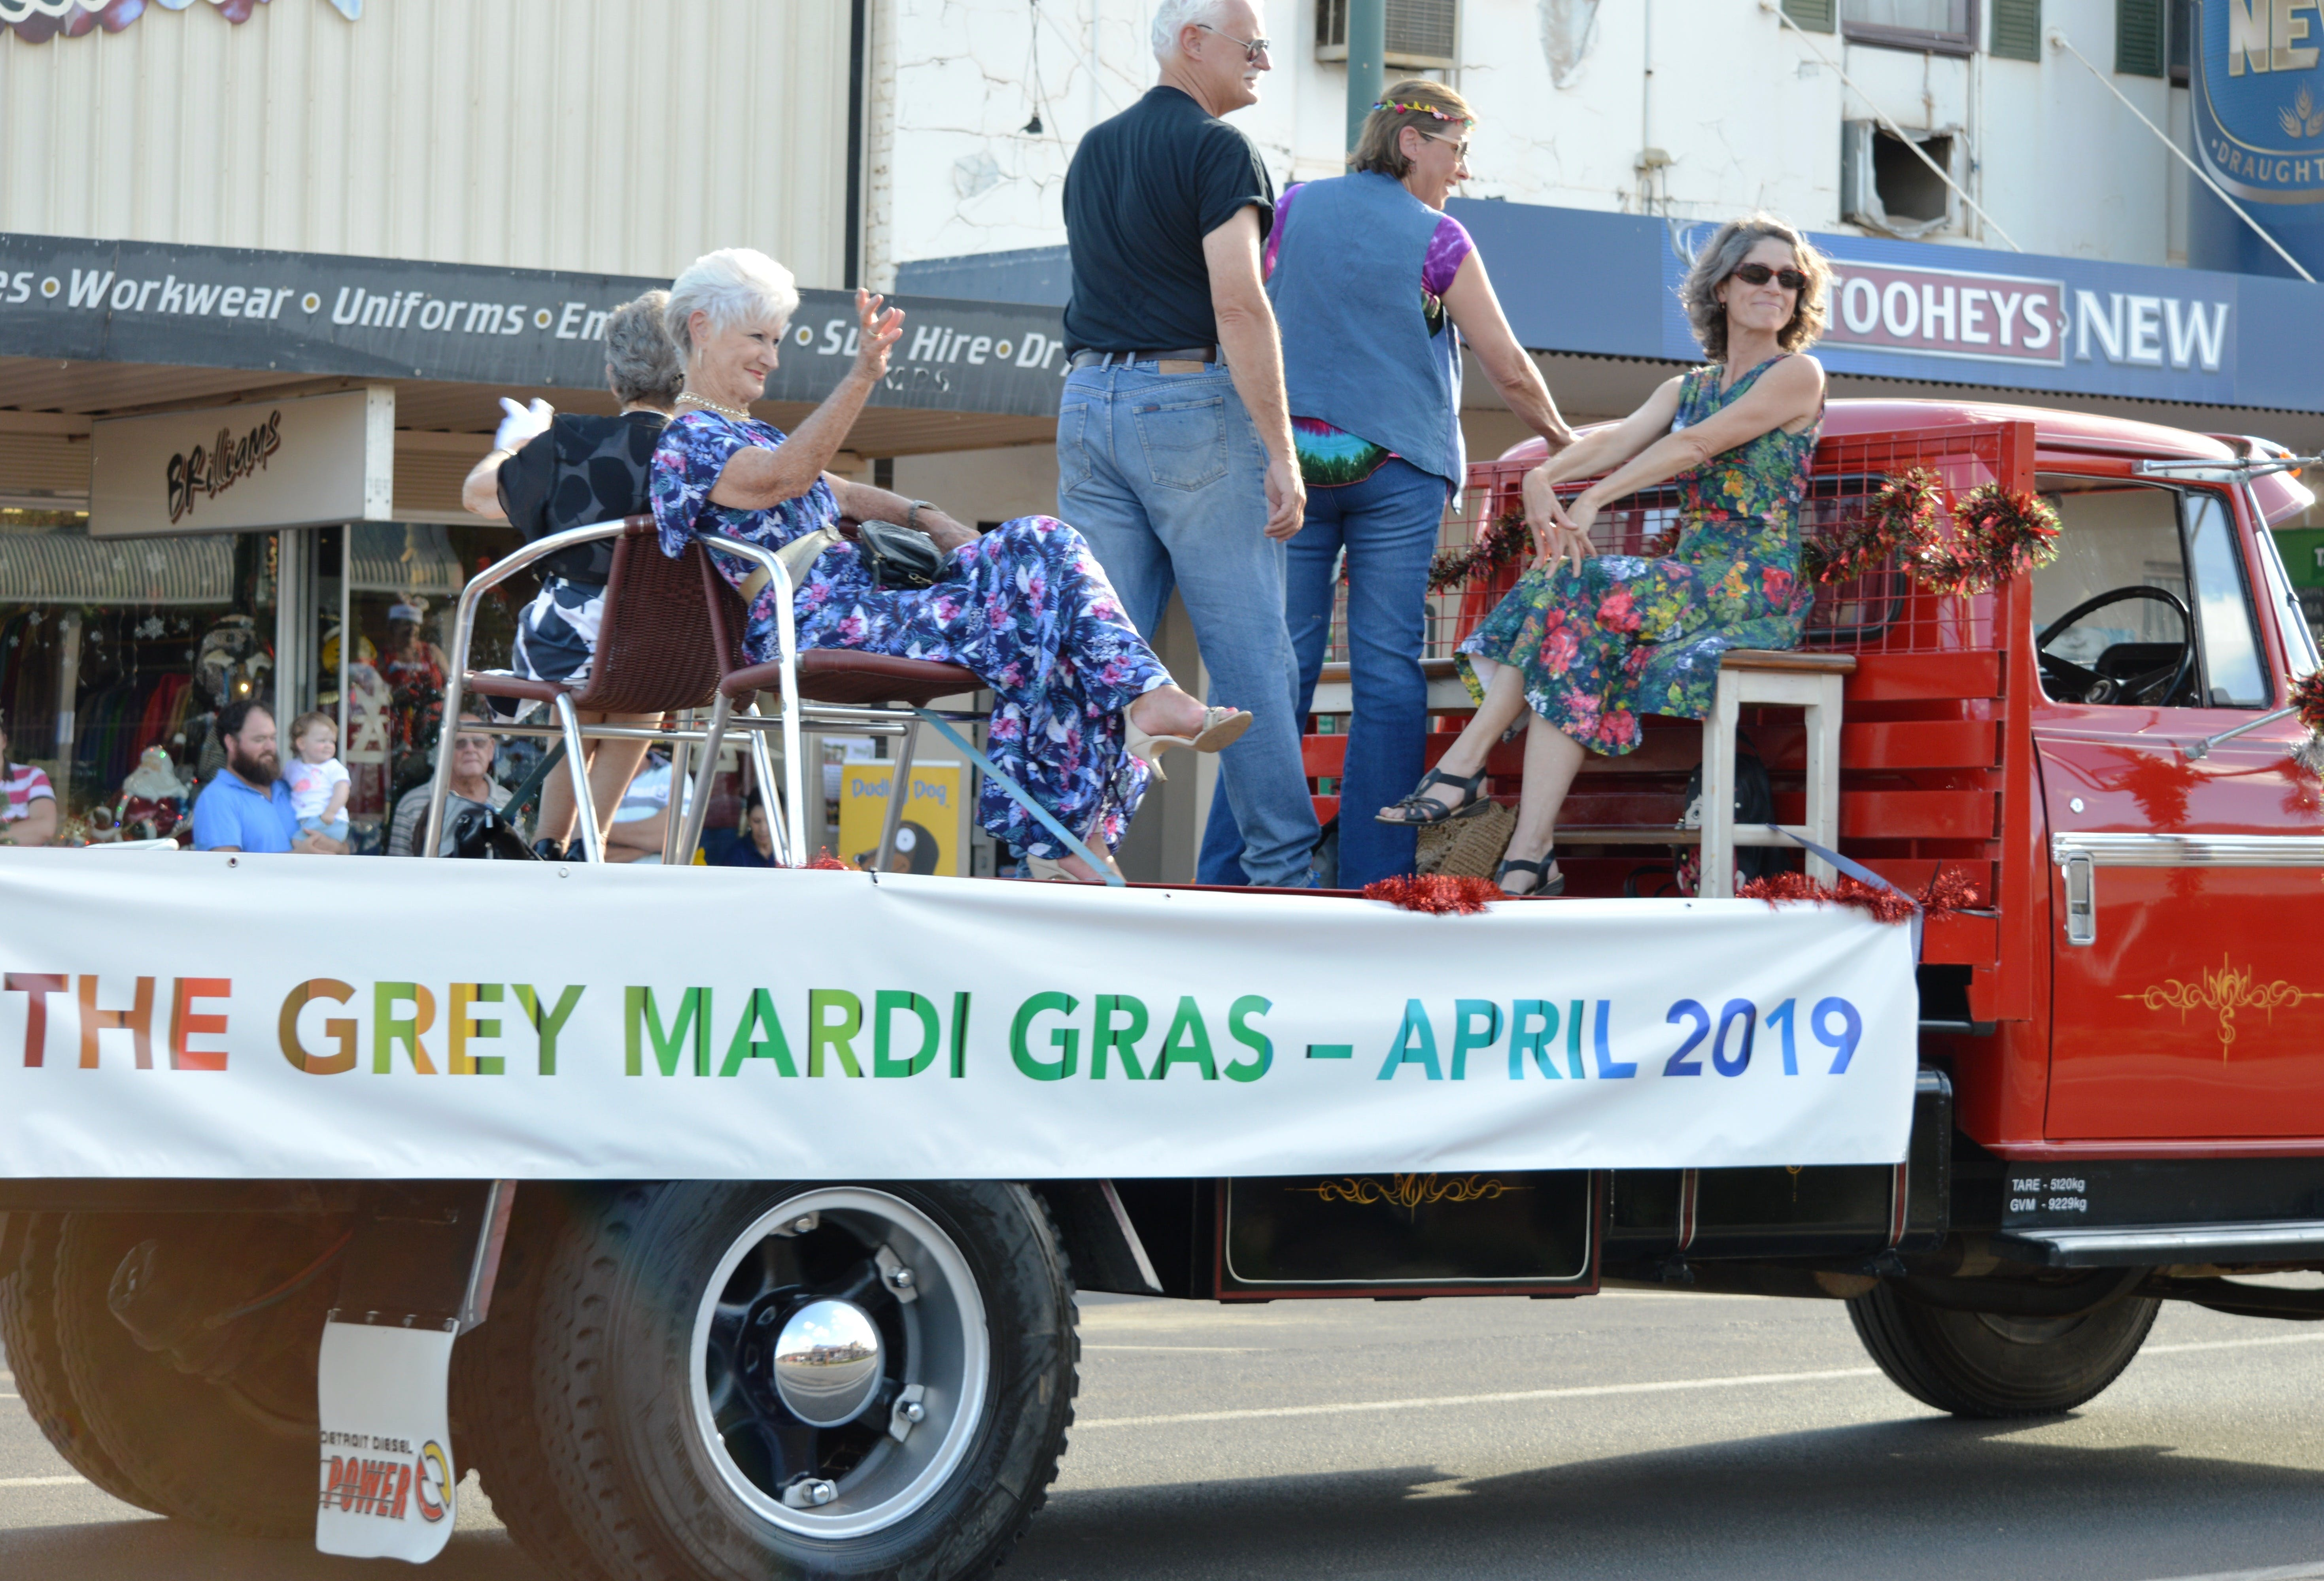 The Grey Mardi Gras - Pubs Perth